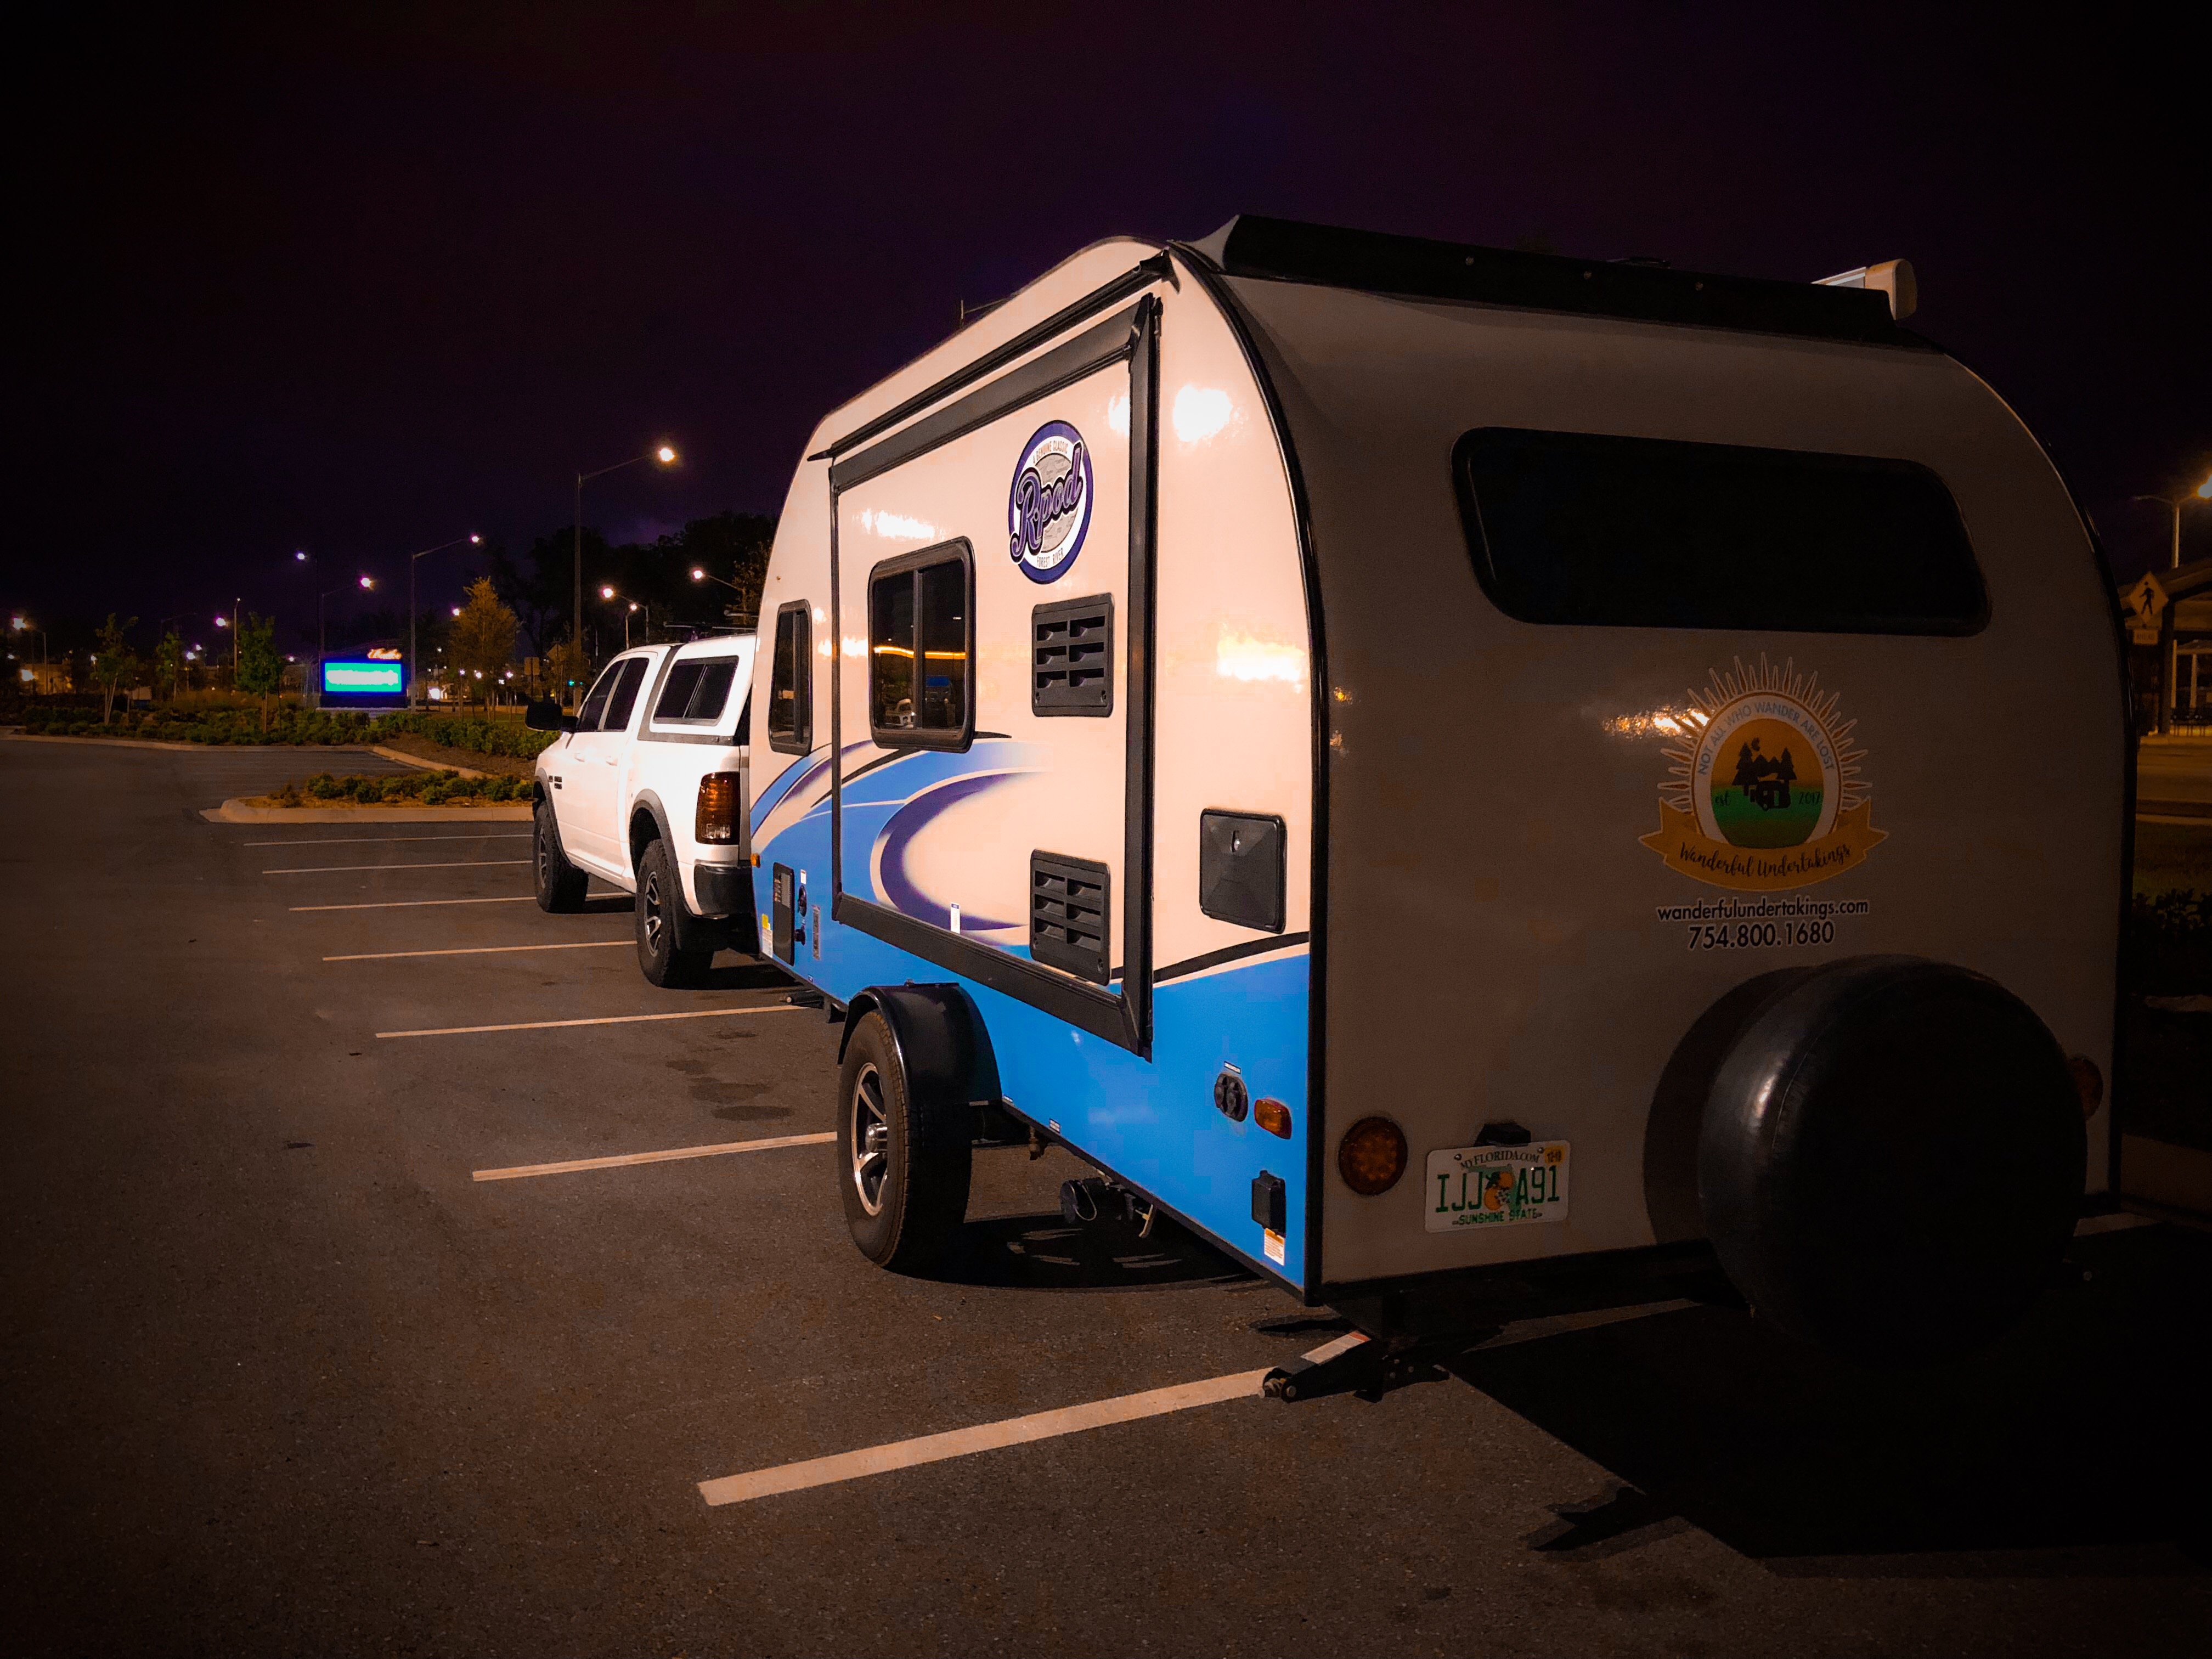 Actual travel trailer setup! (on the road)